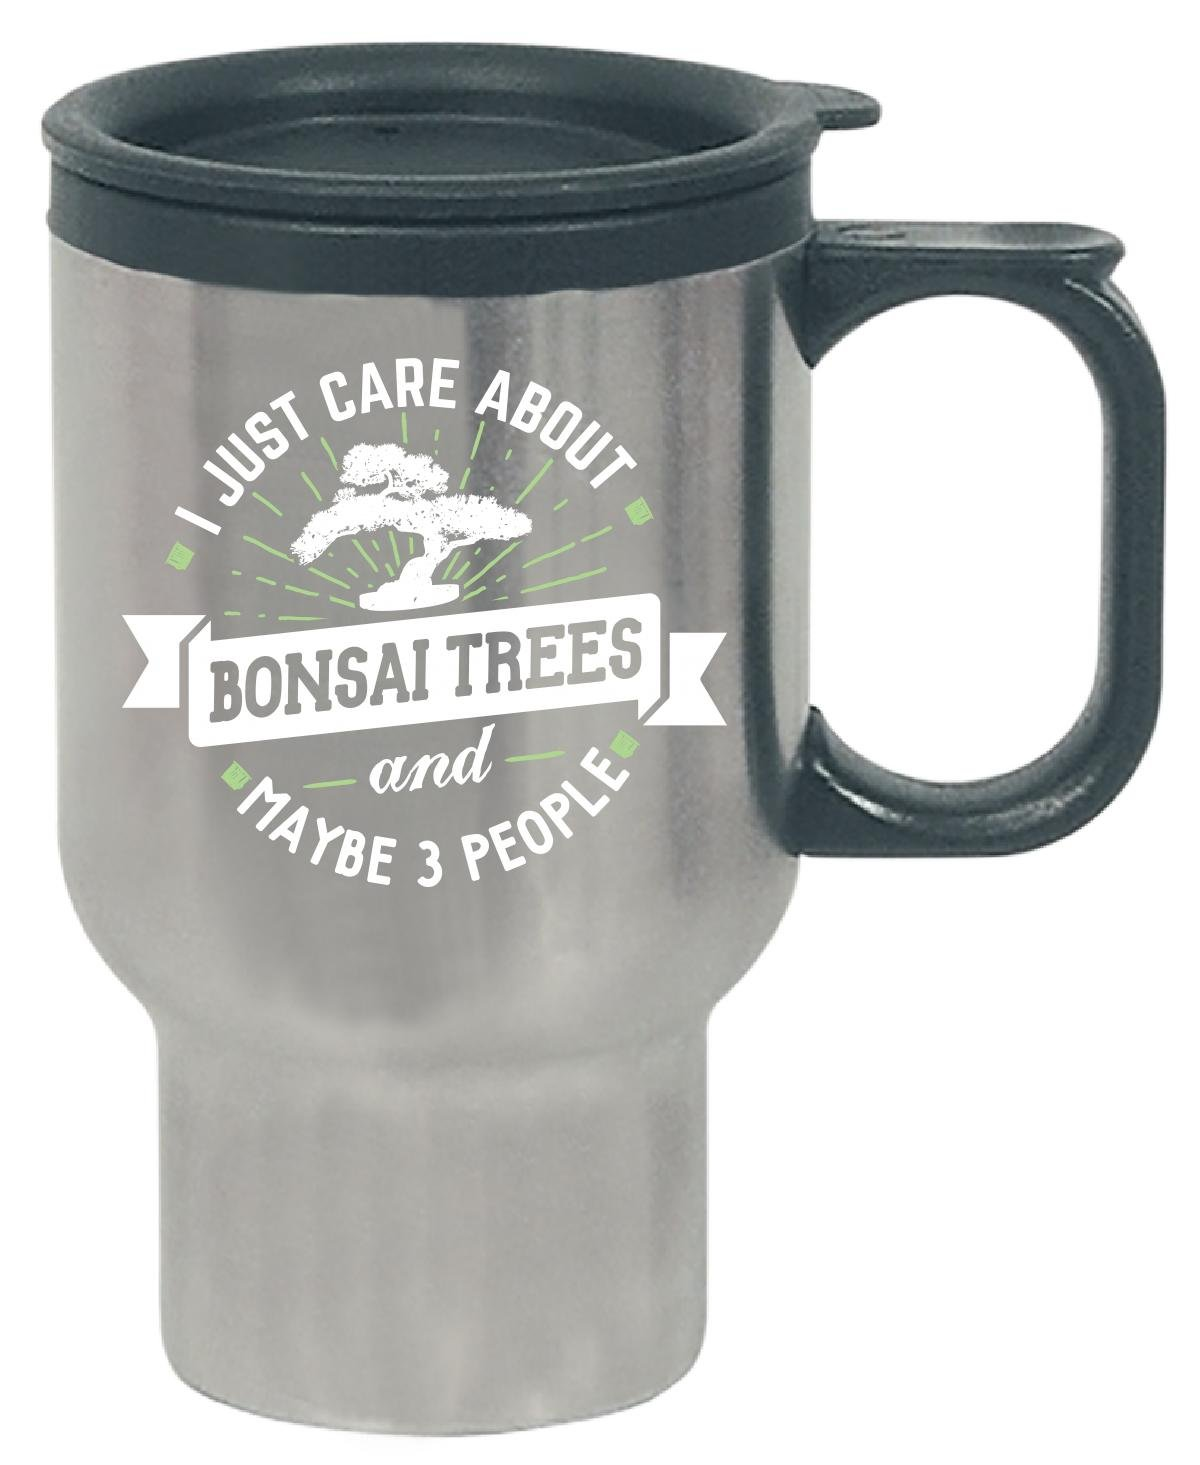 Funny Gift For Bonsai Trees Lovers I Just Care About - Travel Mug